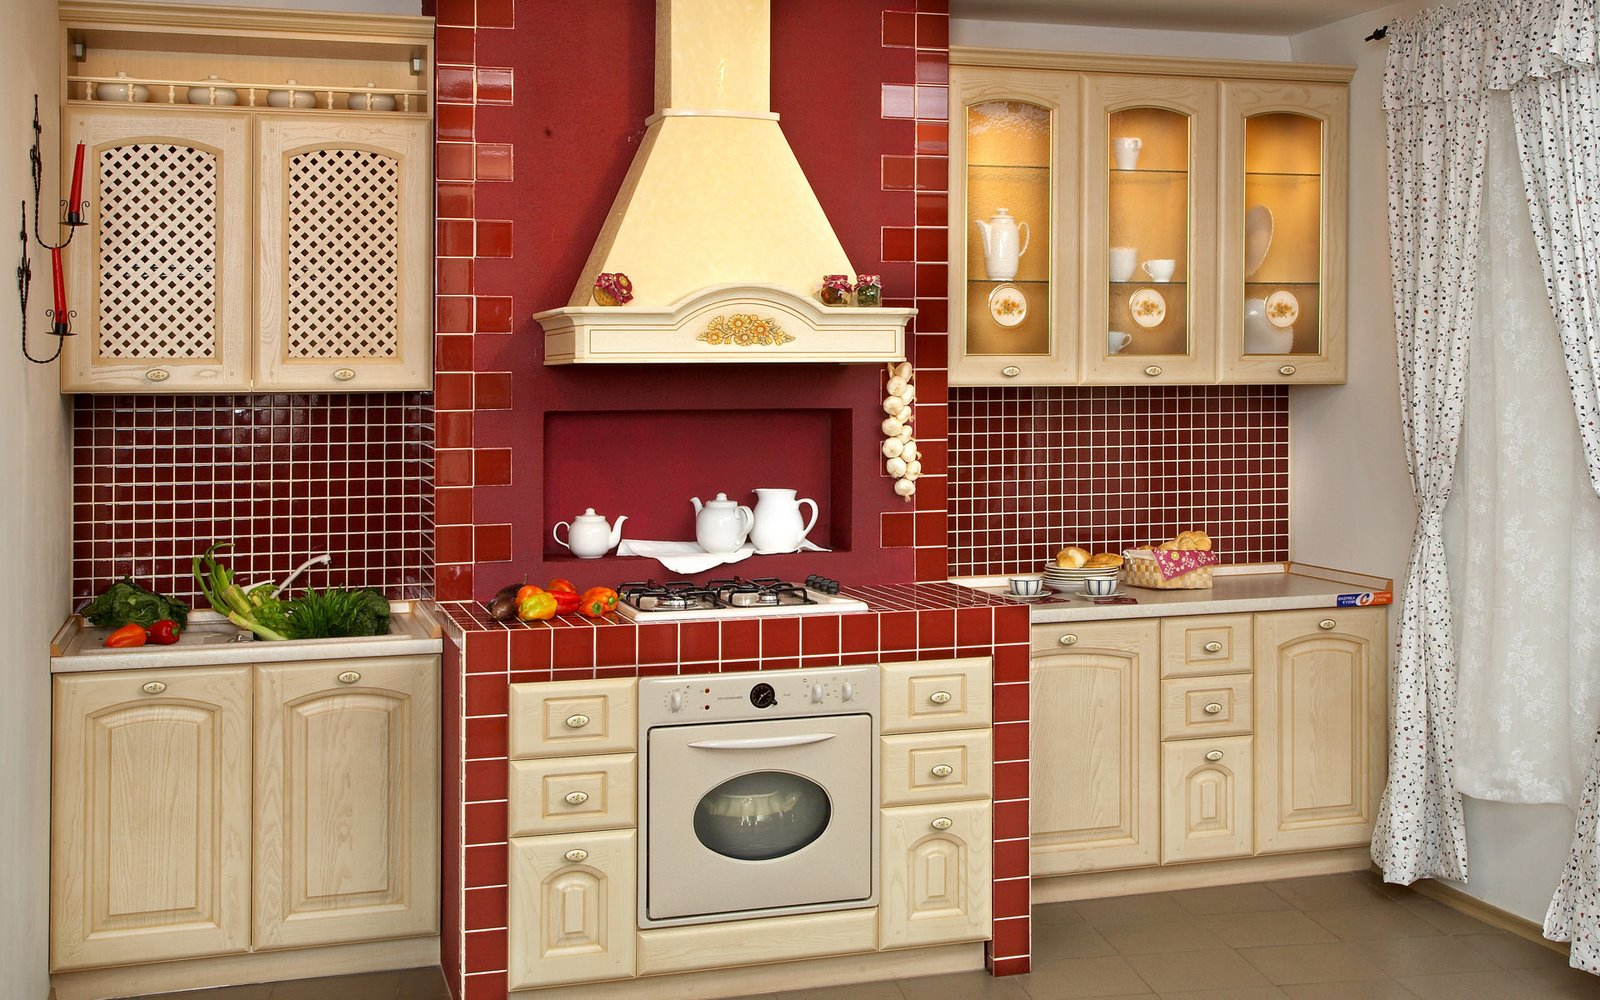 The excellent Kitchen design backsplash tile ideas photograph